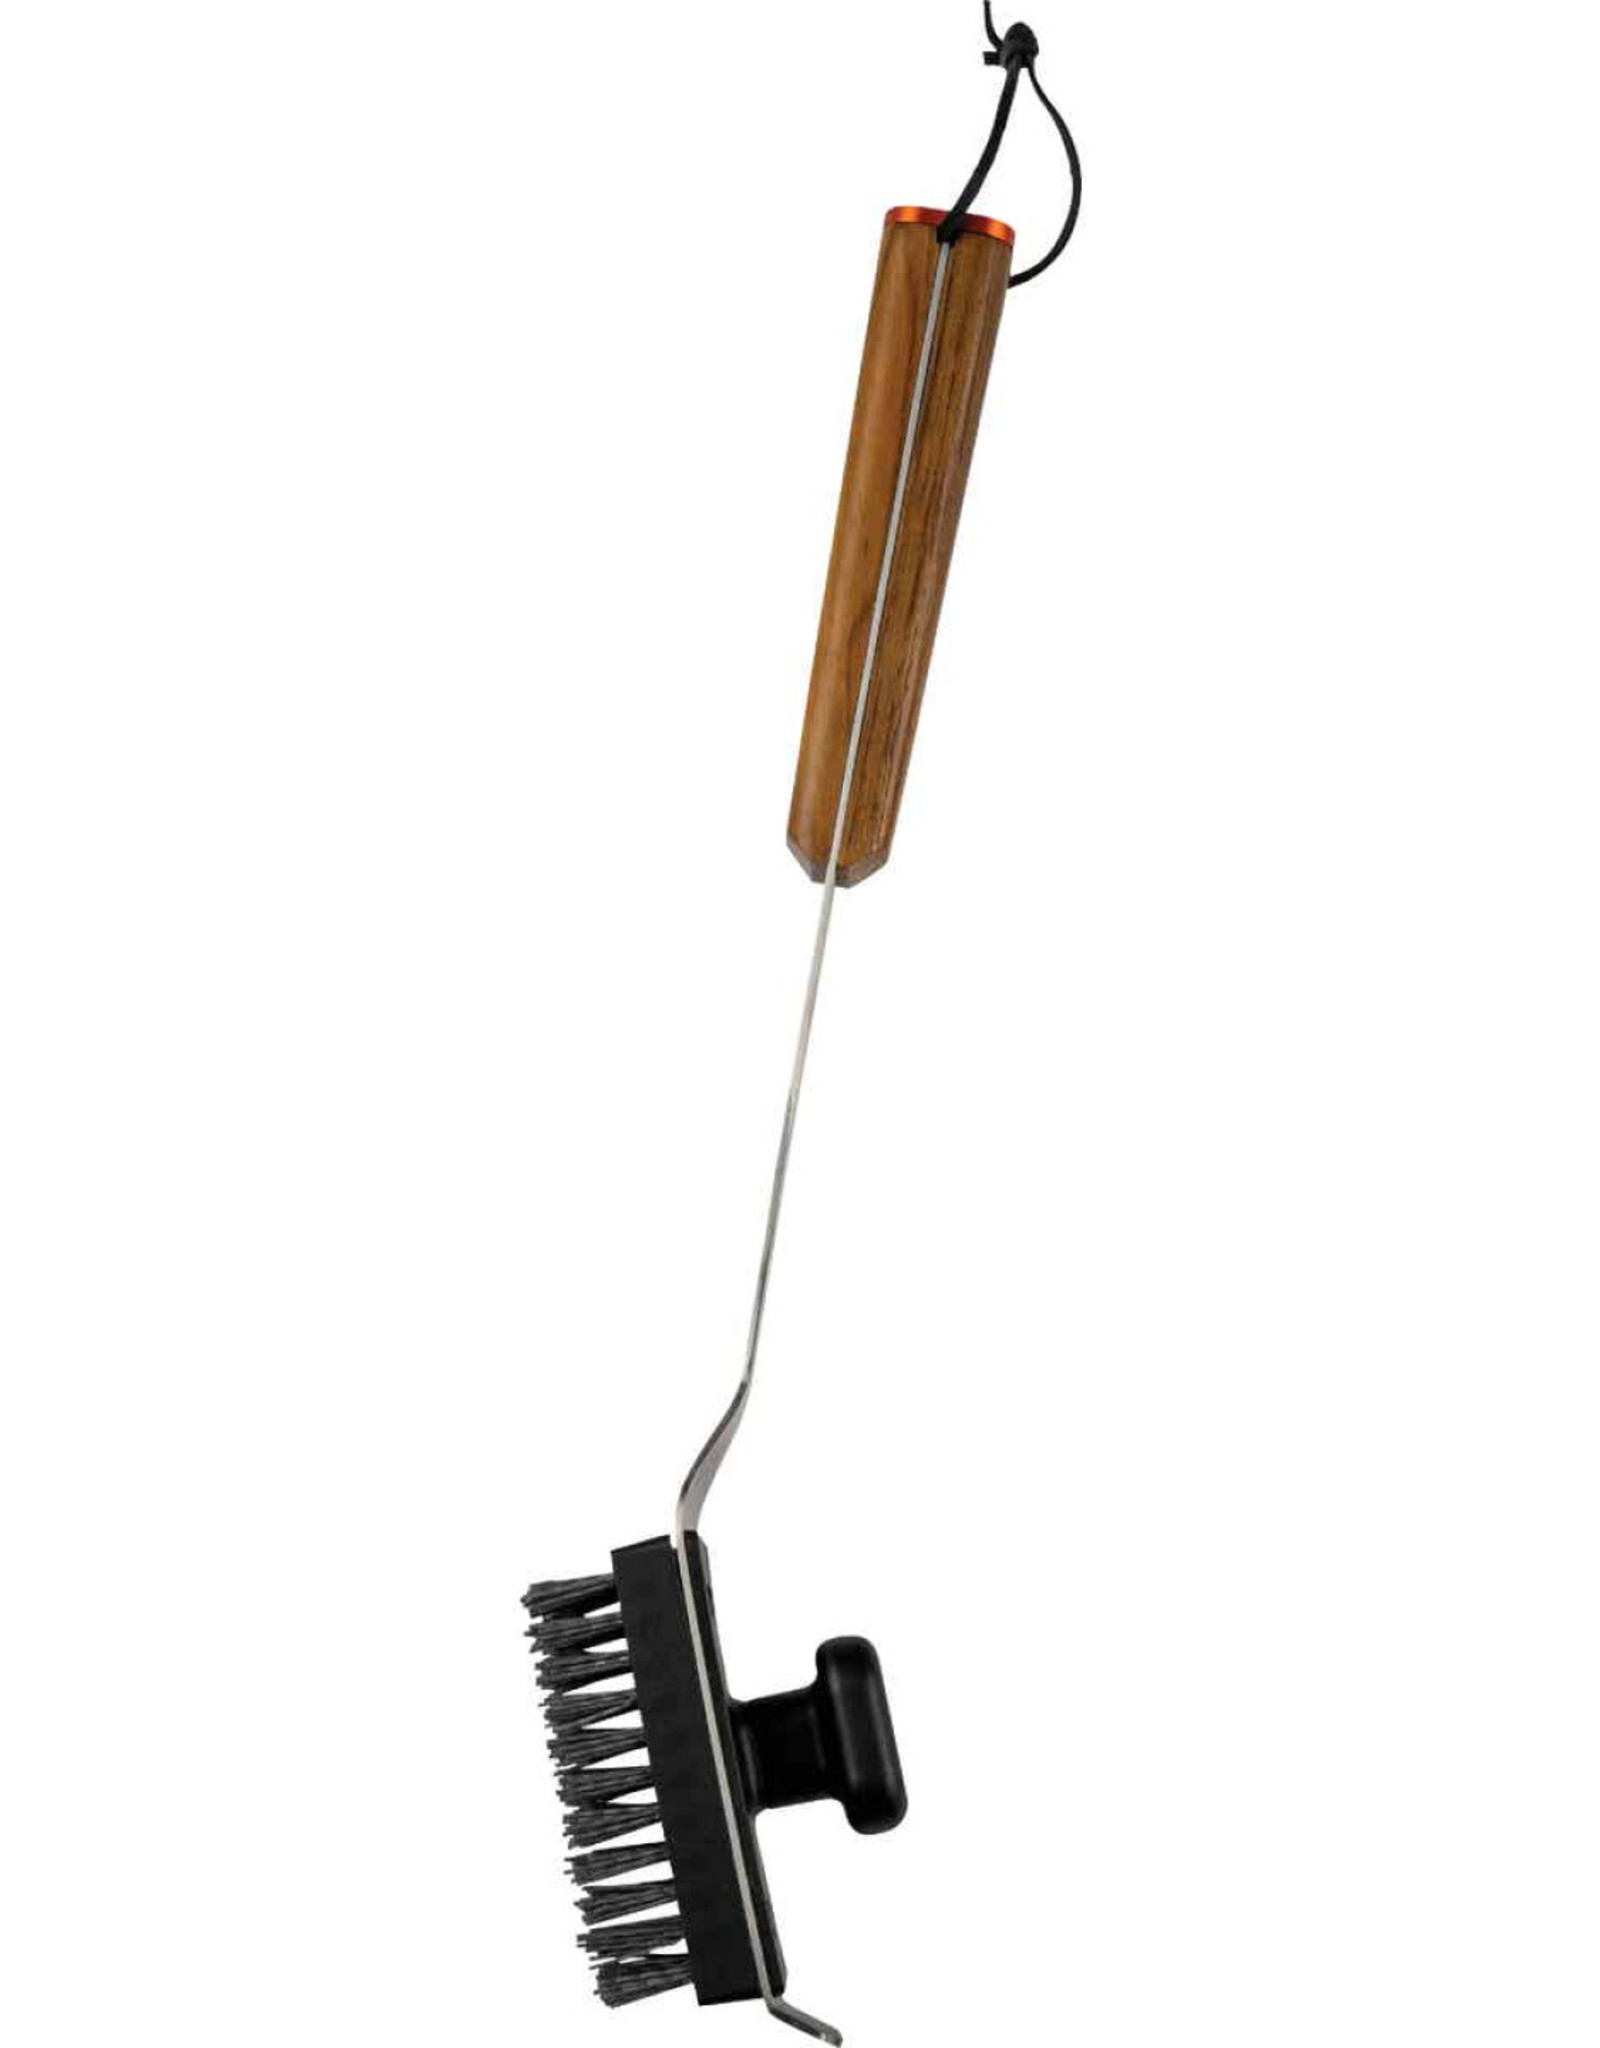 Traeger Traeger 15.75 In. Nylon Bristle Grill Cleaning Brush - BAC537